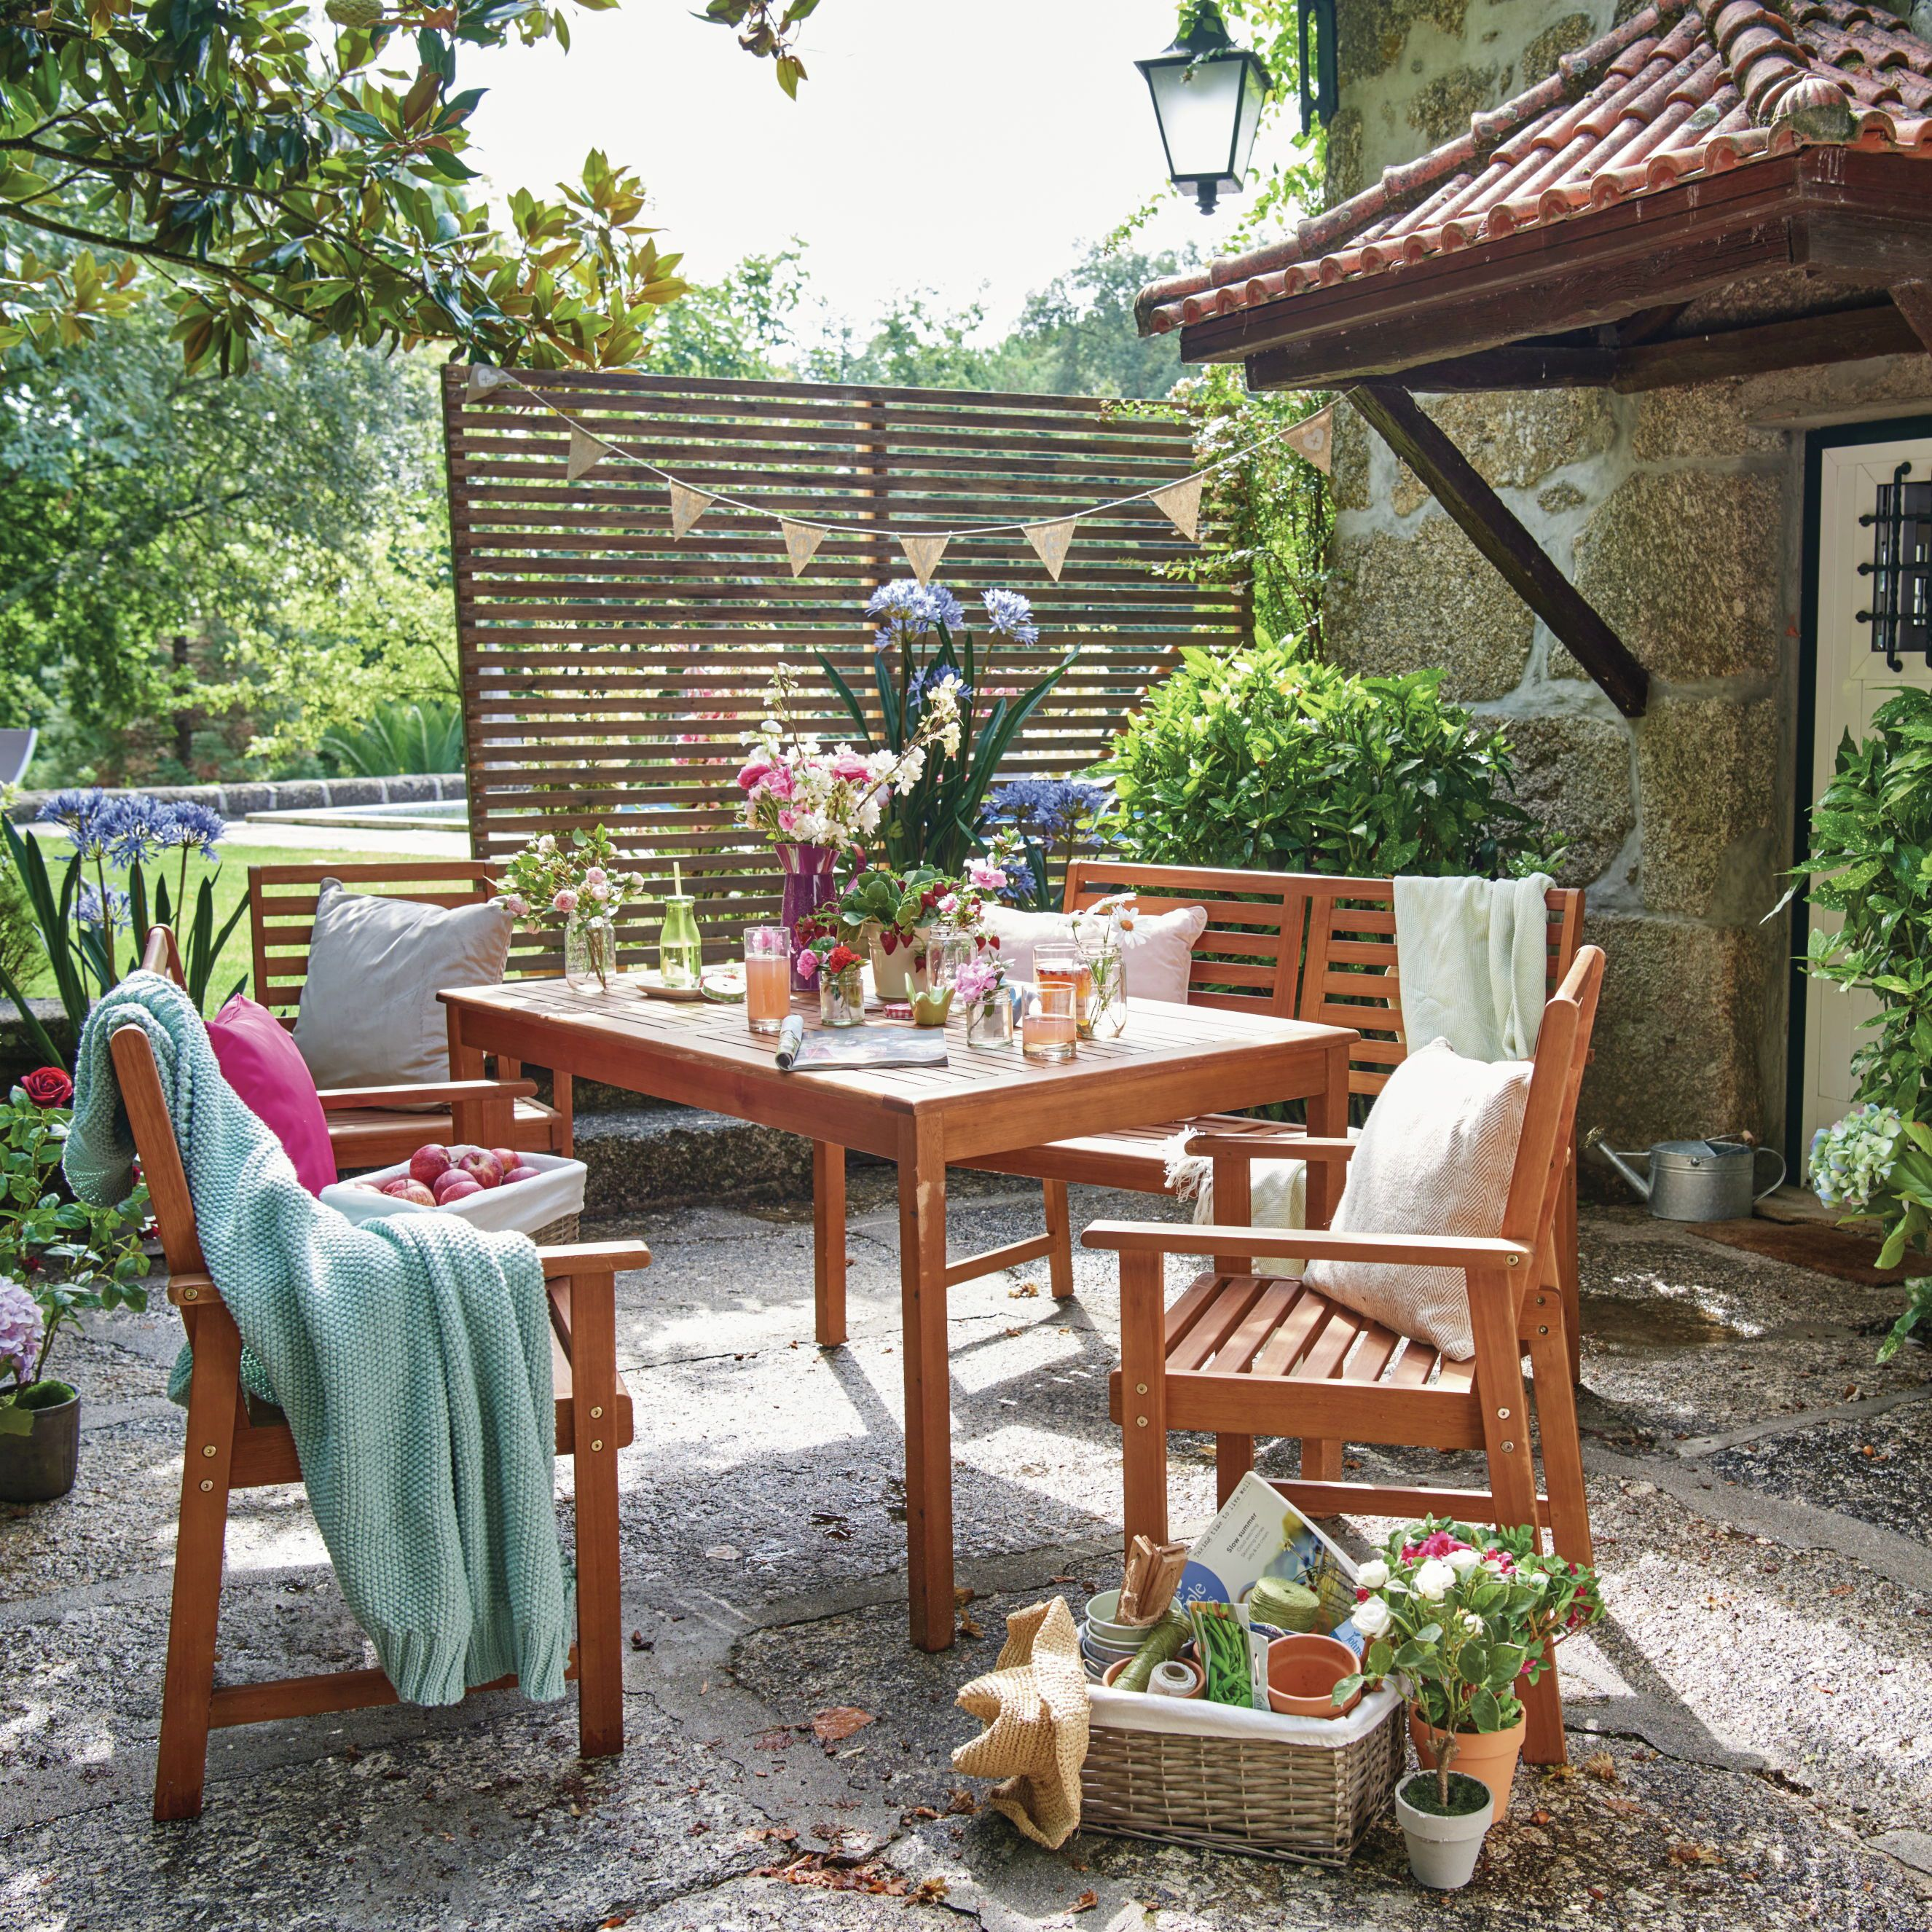 10 Best Garden Furniture Sets - Outdoor Furniture